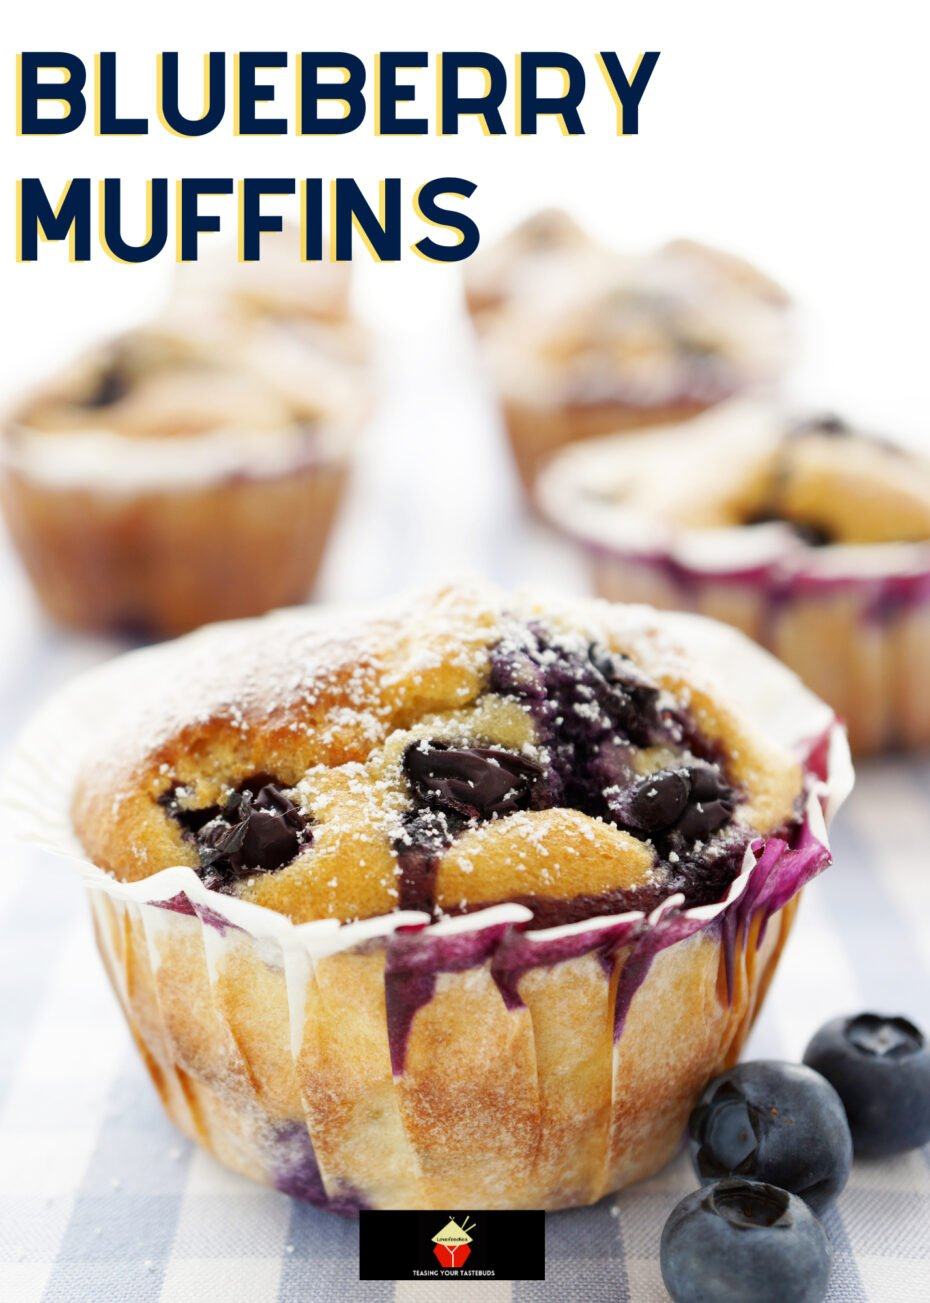 Blueberry Muffins. An easy breakfast muffin recipe, using fresh blueberries and regular pantry ingredients. Not overly sweet and great served warm for breakfast